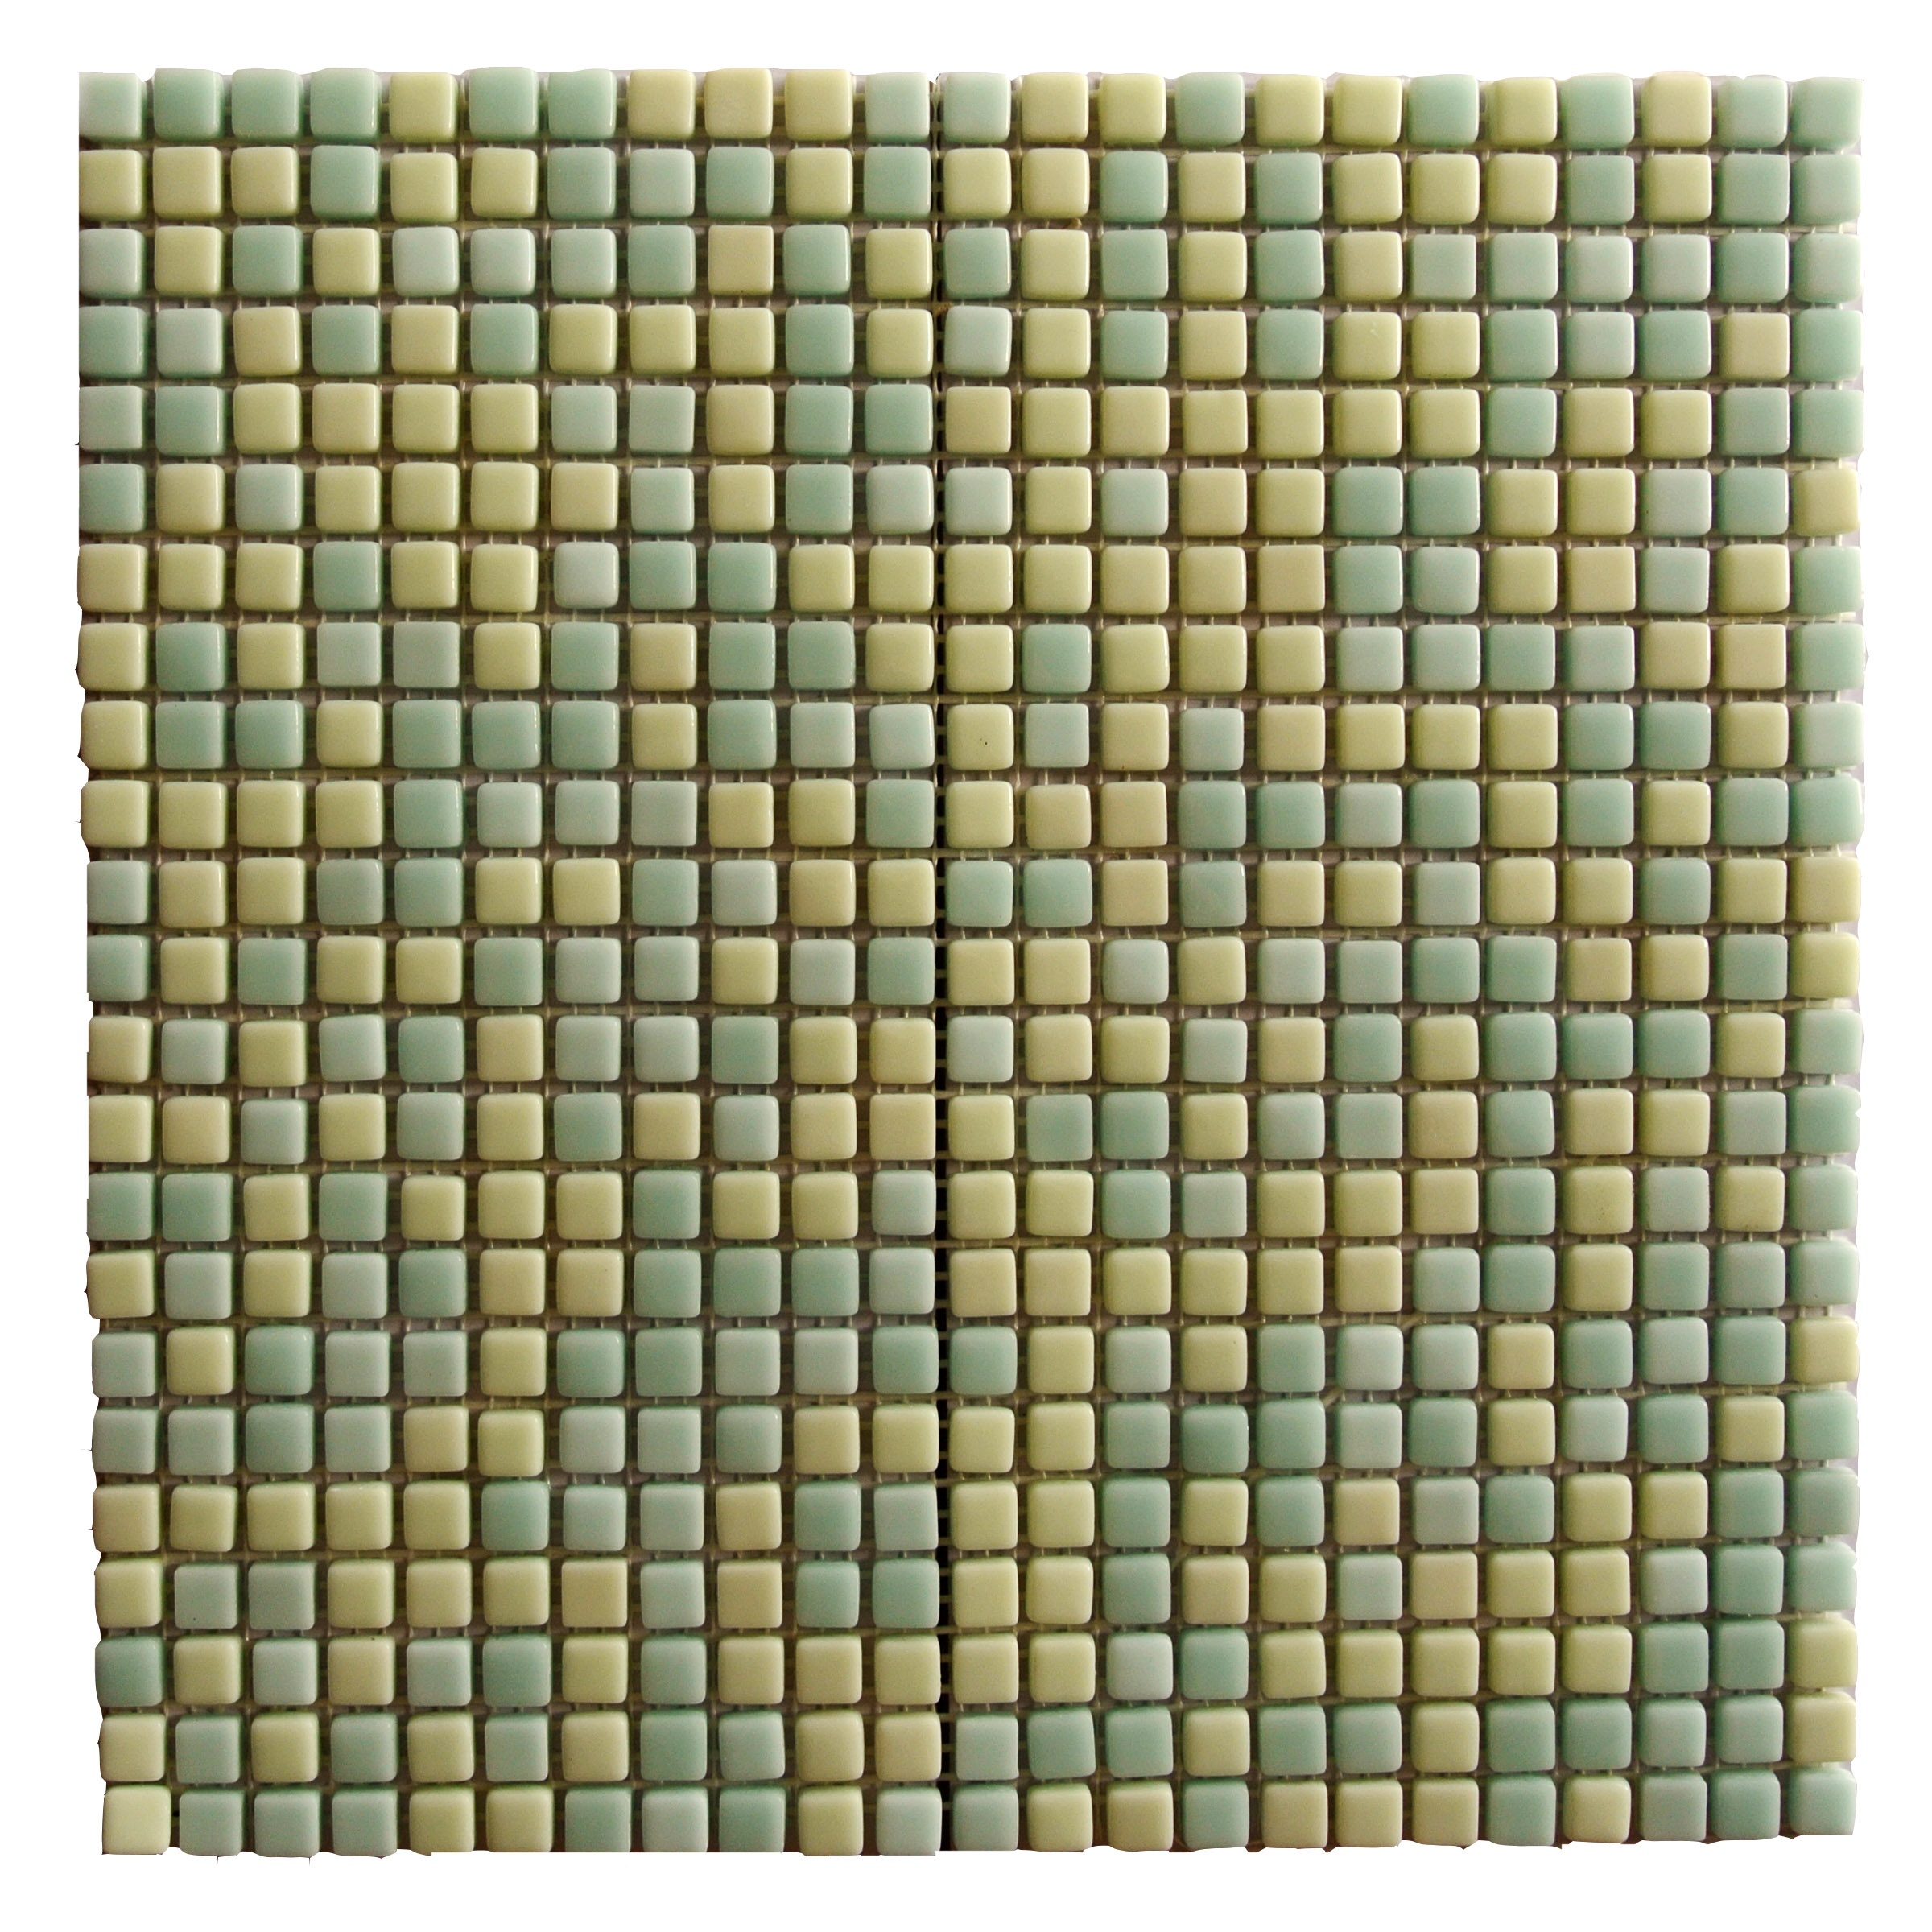 "Marble 0.5"" x 0.5"" Multi Finish Green Glass Square Backsplash Mosaic Wall & Floor Tile"